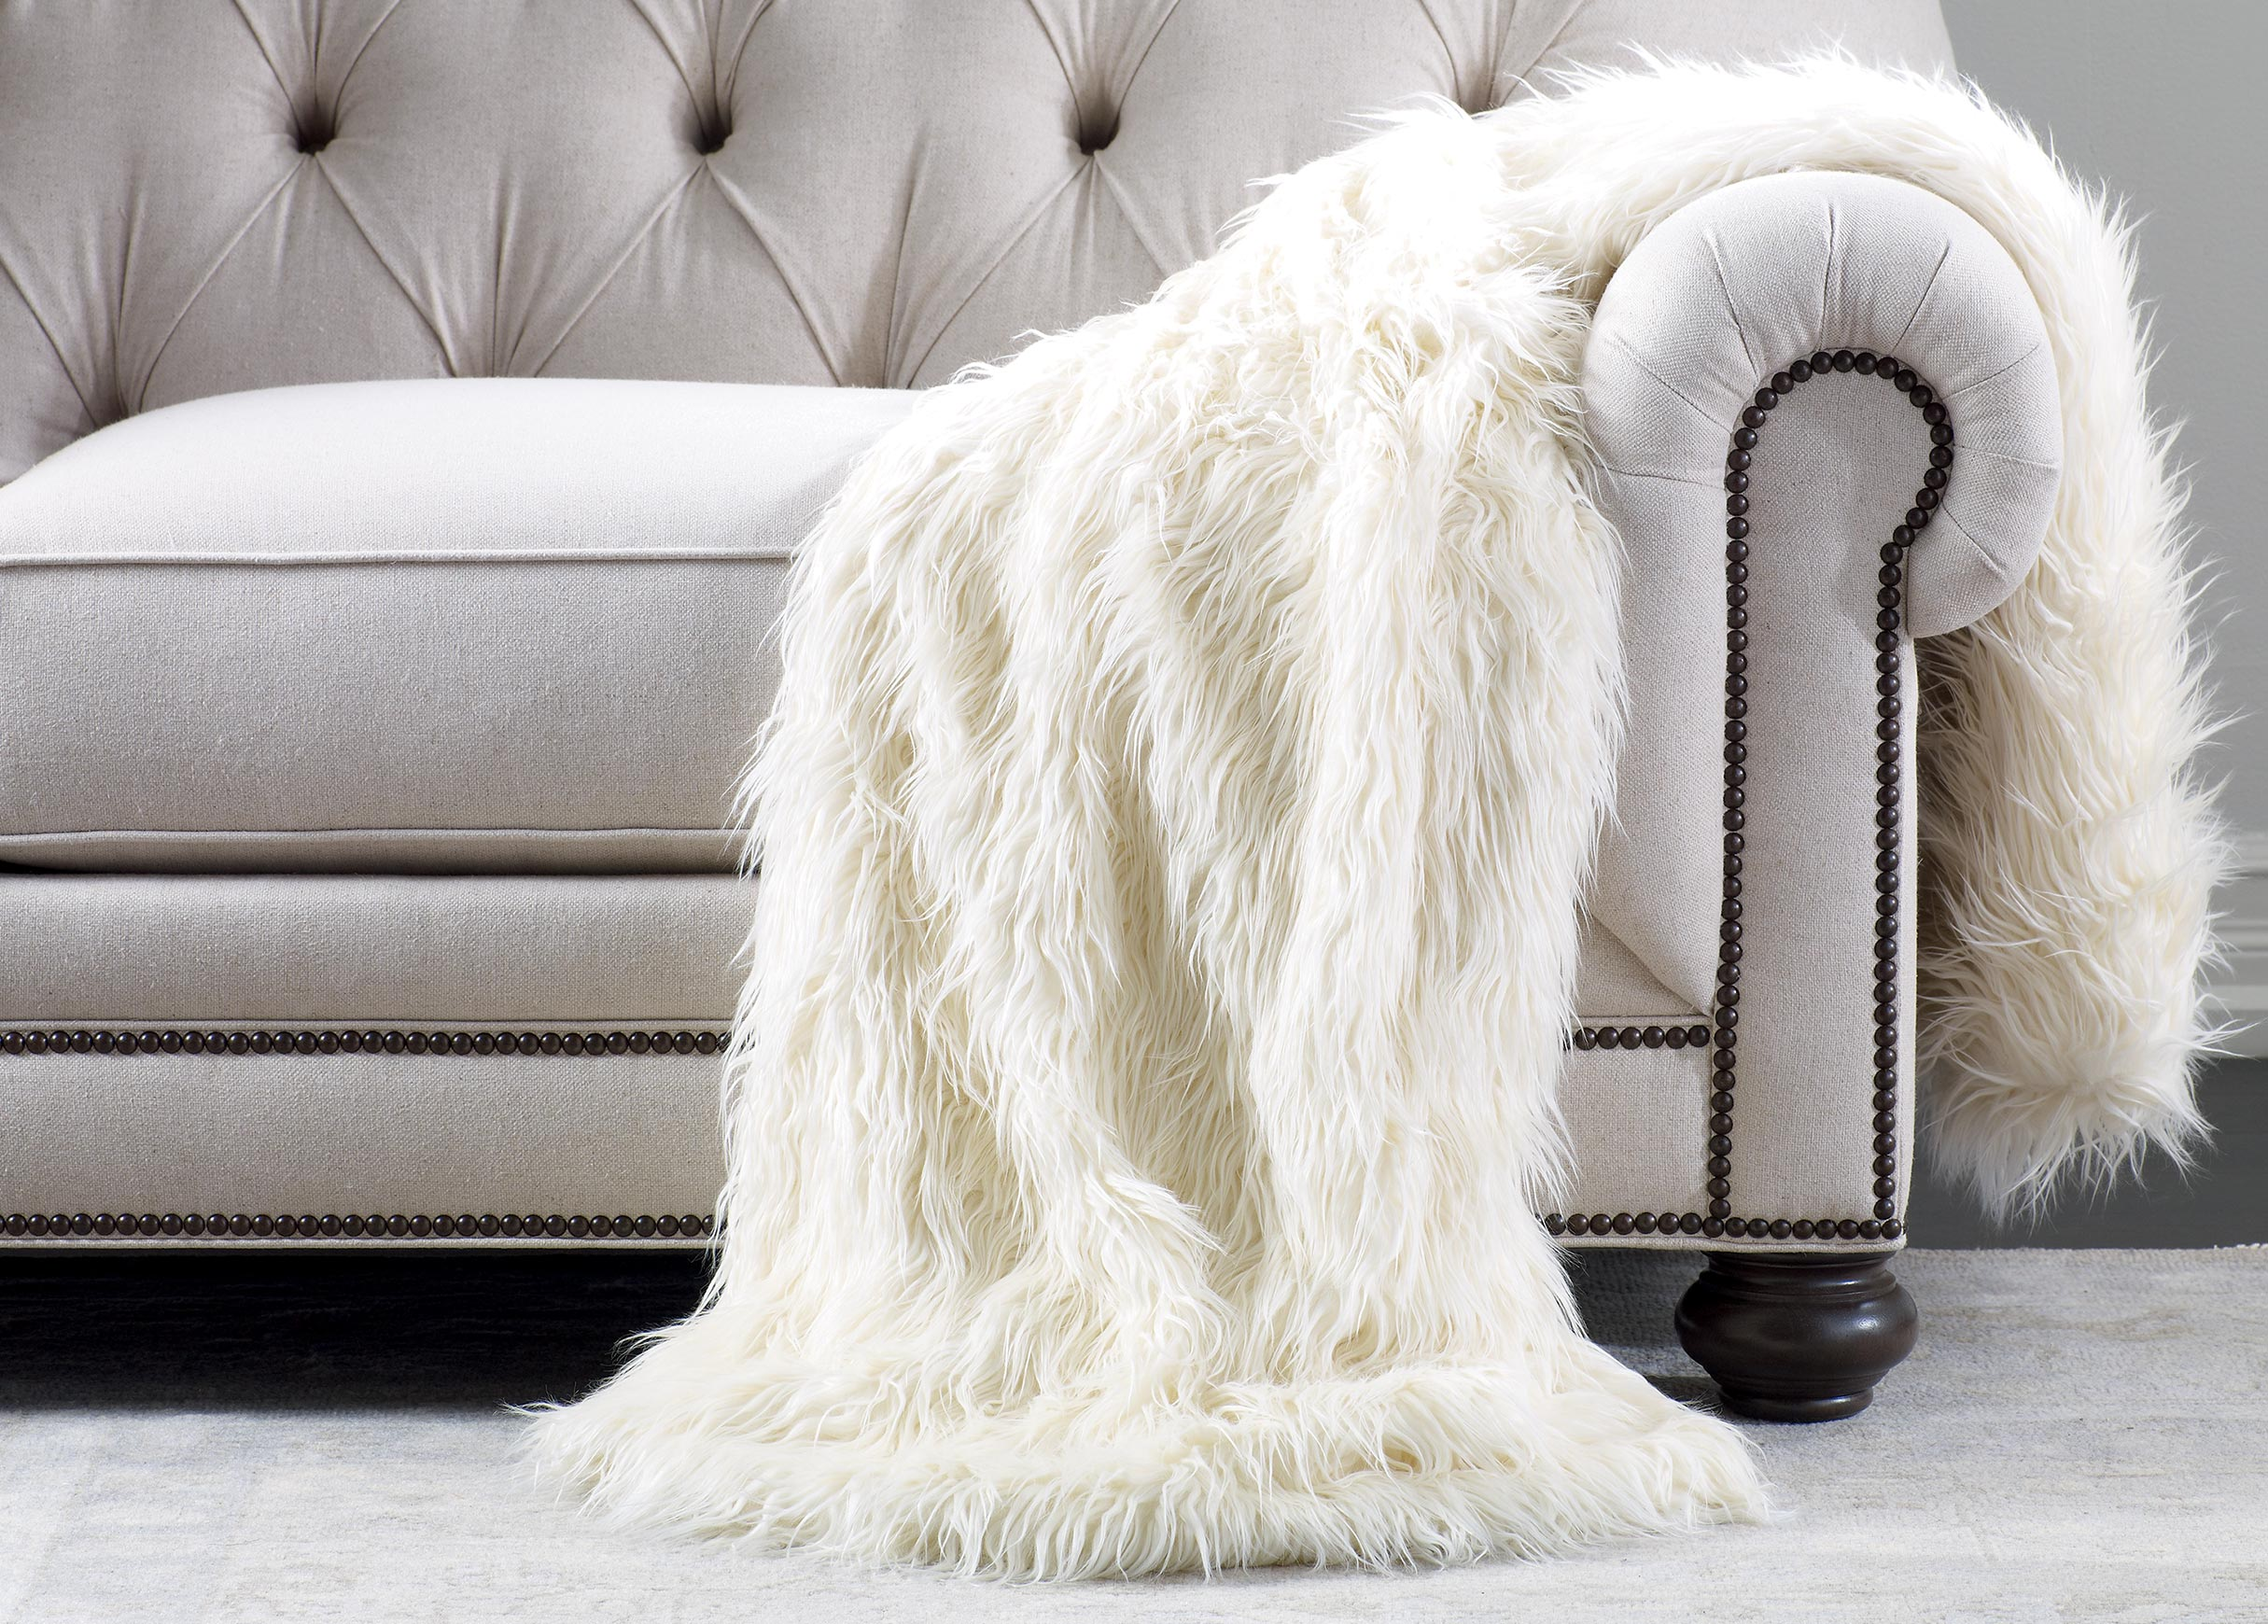 Shop for throws and throw blankets at shopnow-bqimqrqk.tk Find a variety of knit, fuzzy and faux fur throws perfect for your bedroom at Pier 1 Imports.